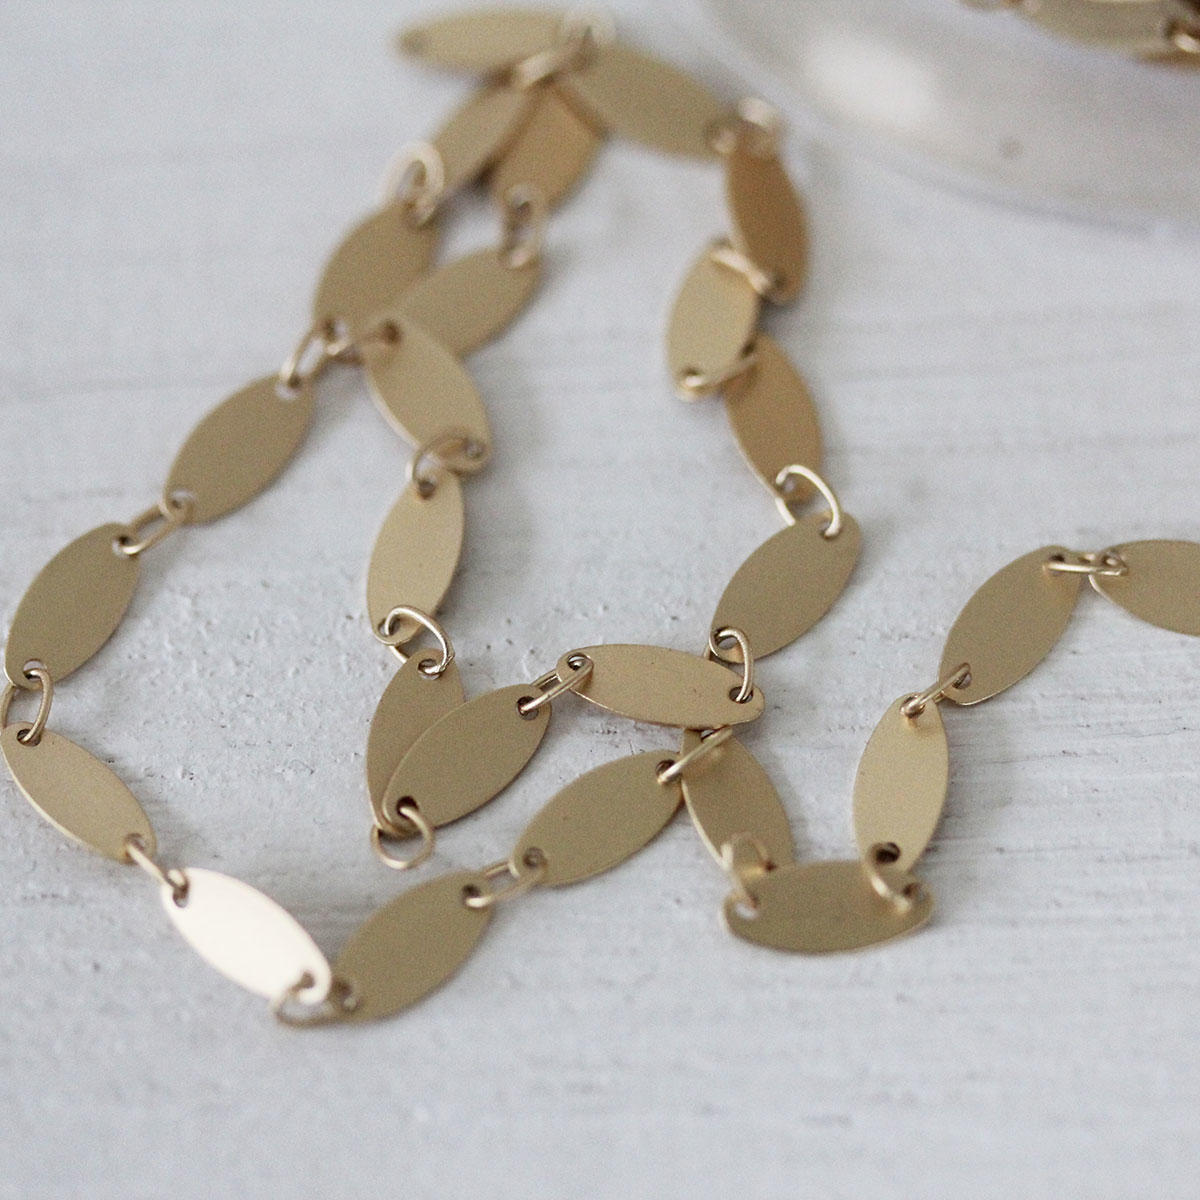 Soft Gold Chain of Oval Discs